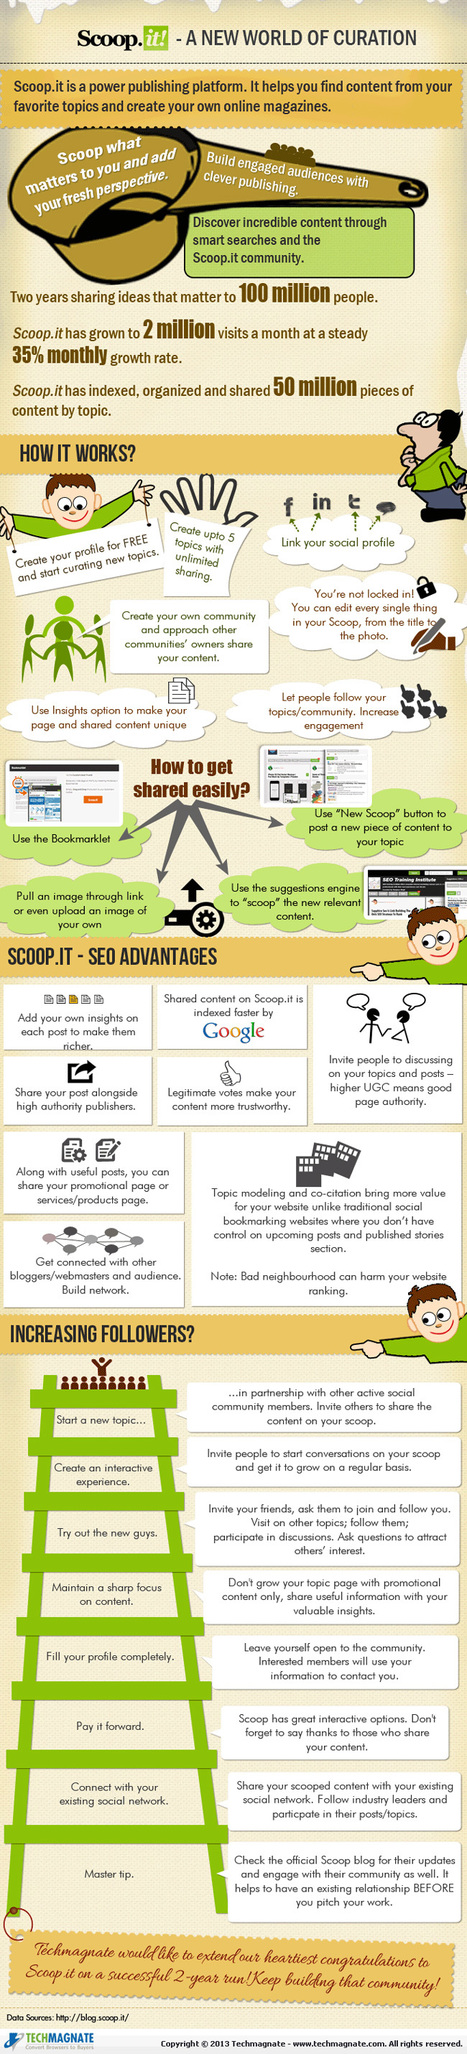 Scoop.It for SEO – A New World of Curation [Infographic] | Social media don't be overwhelmed! | Scoop.it